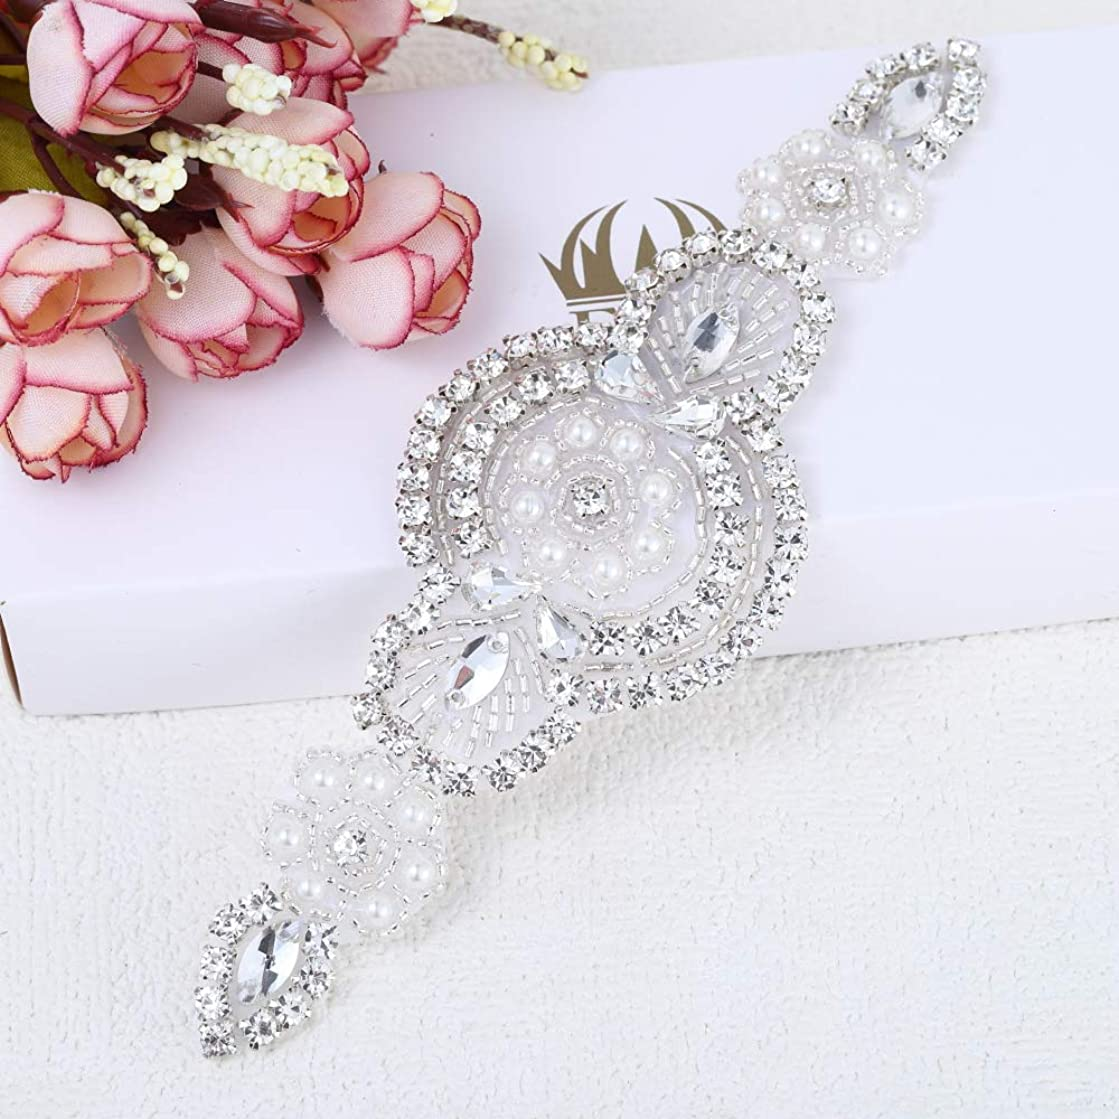 Iron on Sewing Small Rhinestone Applique Beaded Applique for Wedding Dress Accessories Bridal Sash Garter Headband Shoes Sparkly Decoration